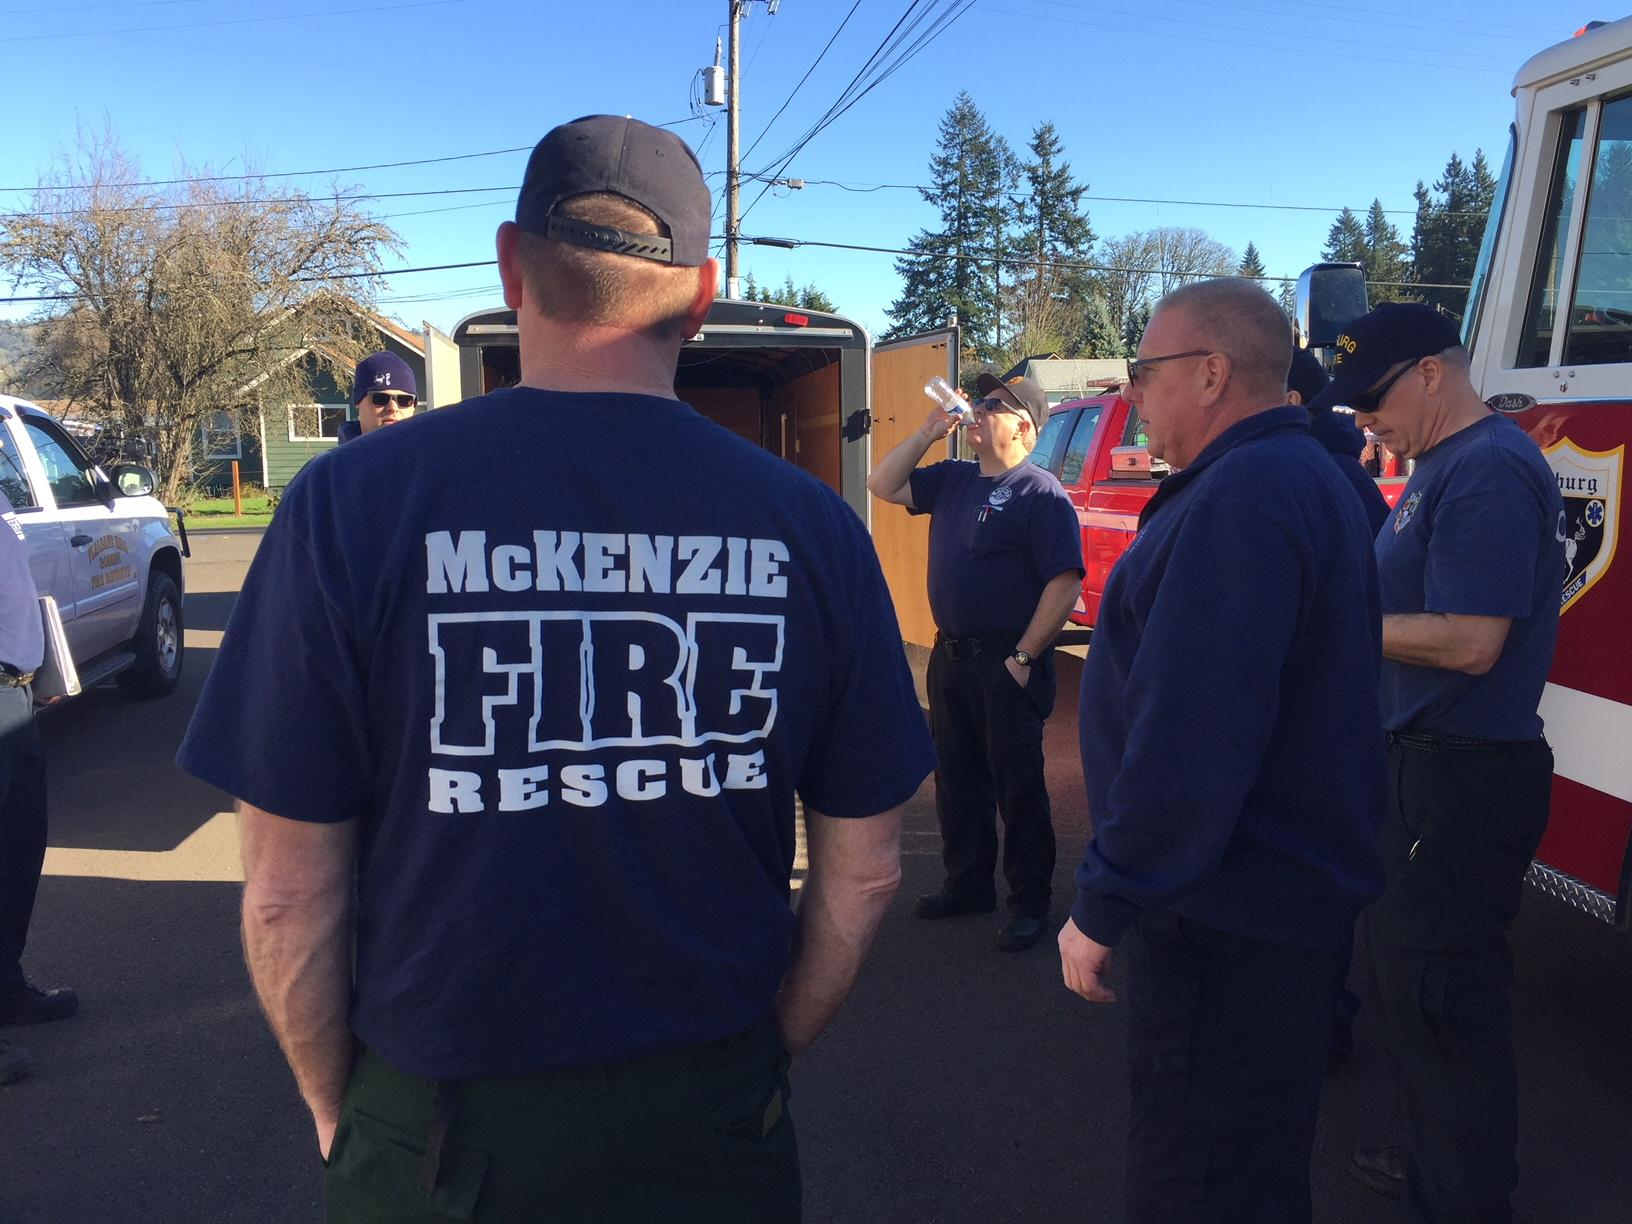 <p>Lane County Fire Defense Board assembled a second strike team to send to California on Wednesday, made up of engines and personnel from Eugene Springfield Fire, McKenzie Fire &amp;amp; Rescue, Coburg Fire District, Siuslaw Valley Fire, and Lane Fire Authority. The team met at Goshen Fire District at 1 p.m. to mobilize and head for Southern California, where wildfires have destroyed hundreds of structures and forced thousands of people to evacuate. (SBG)</p>